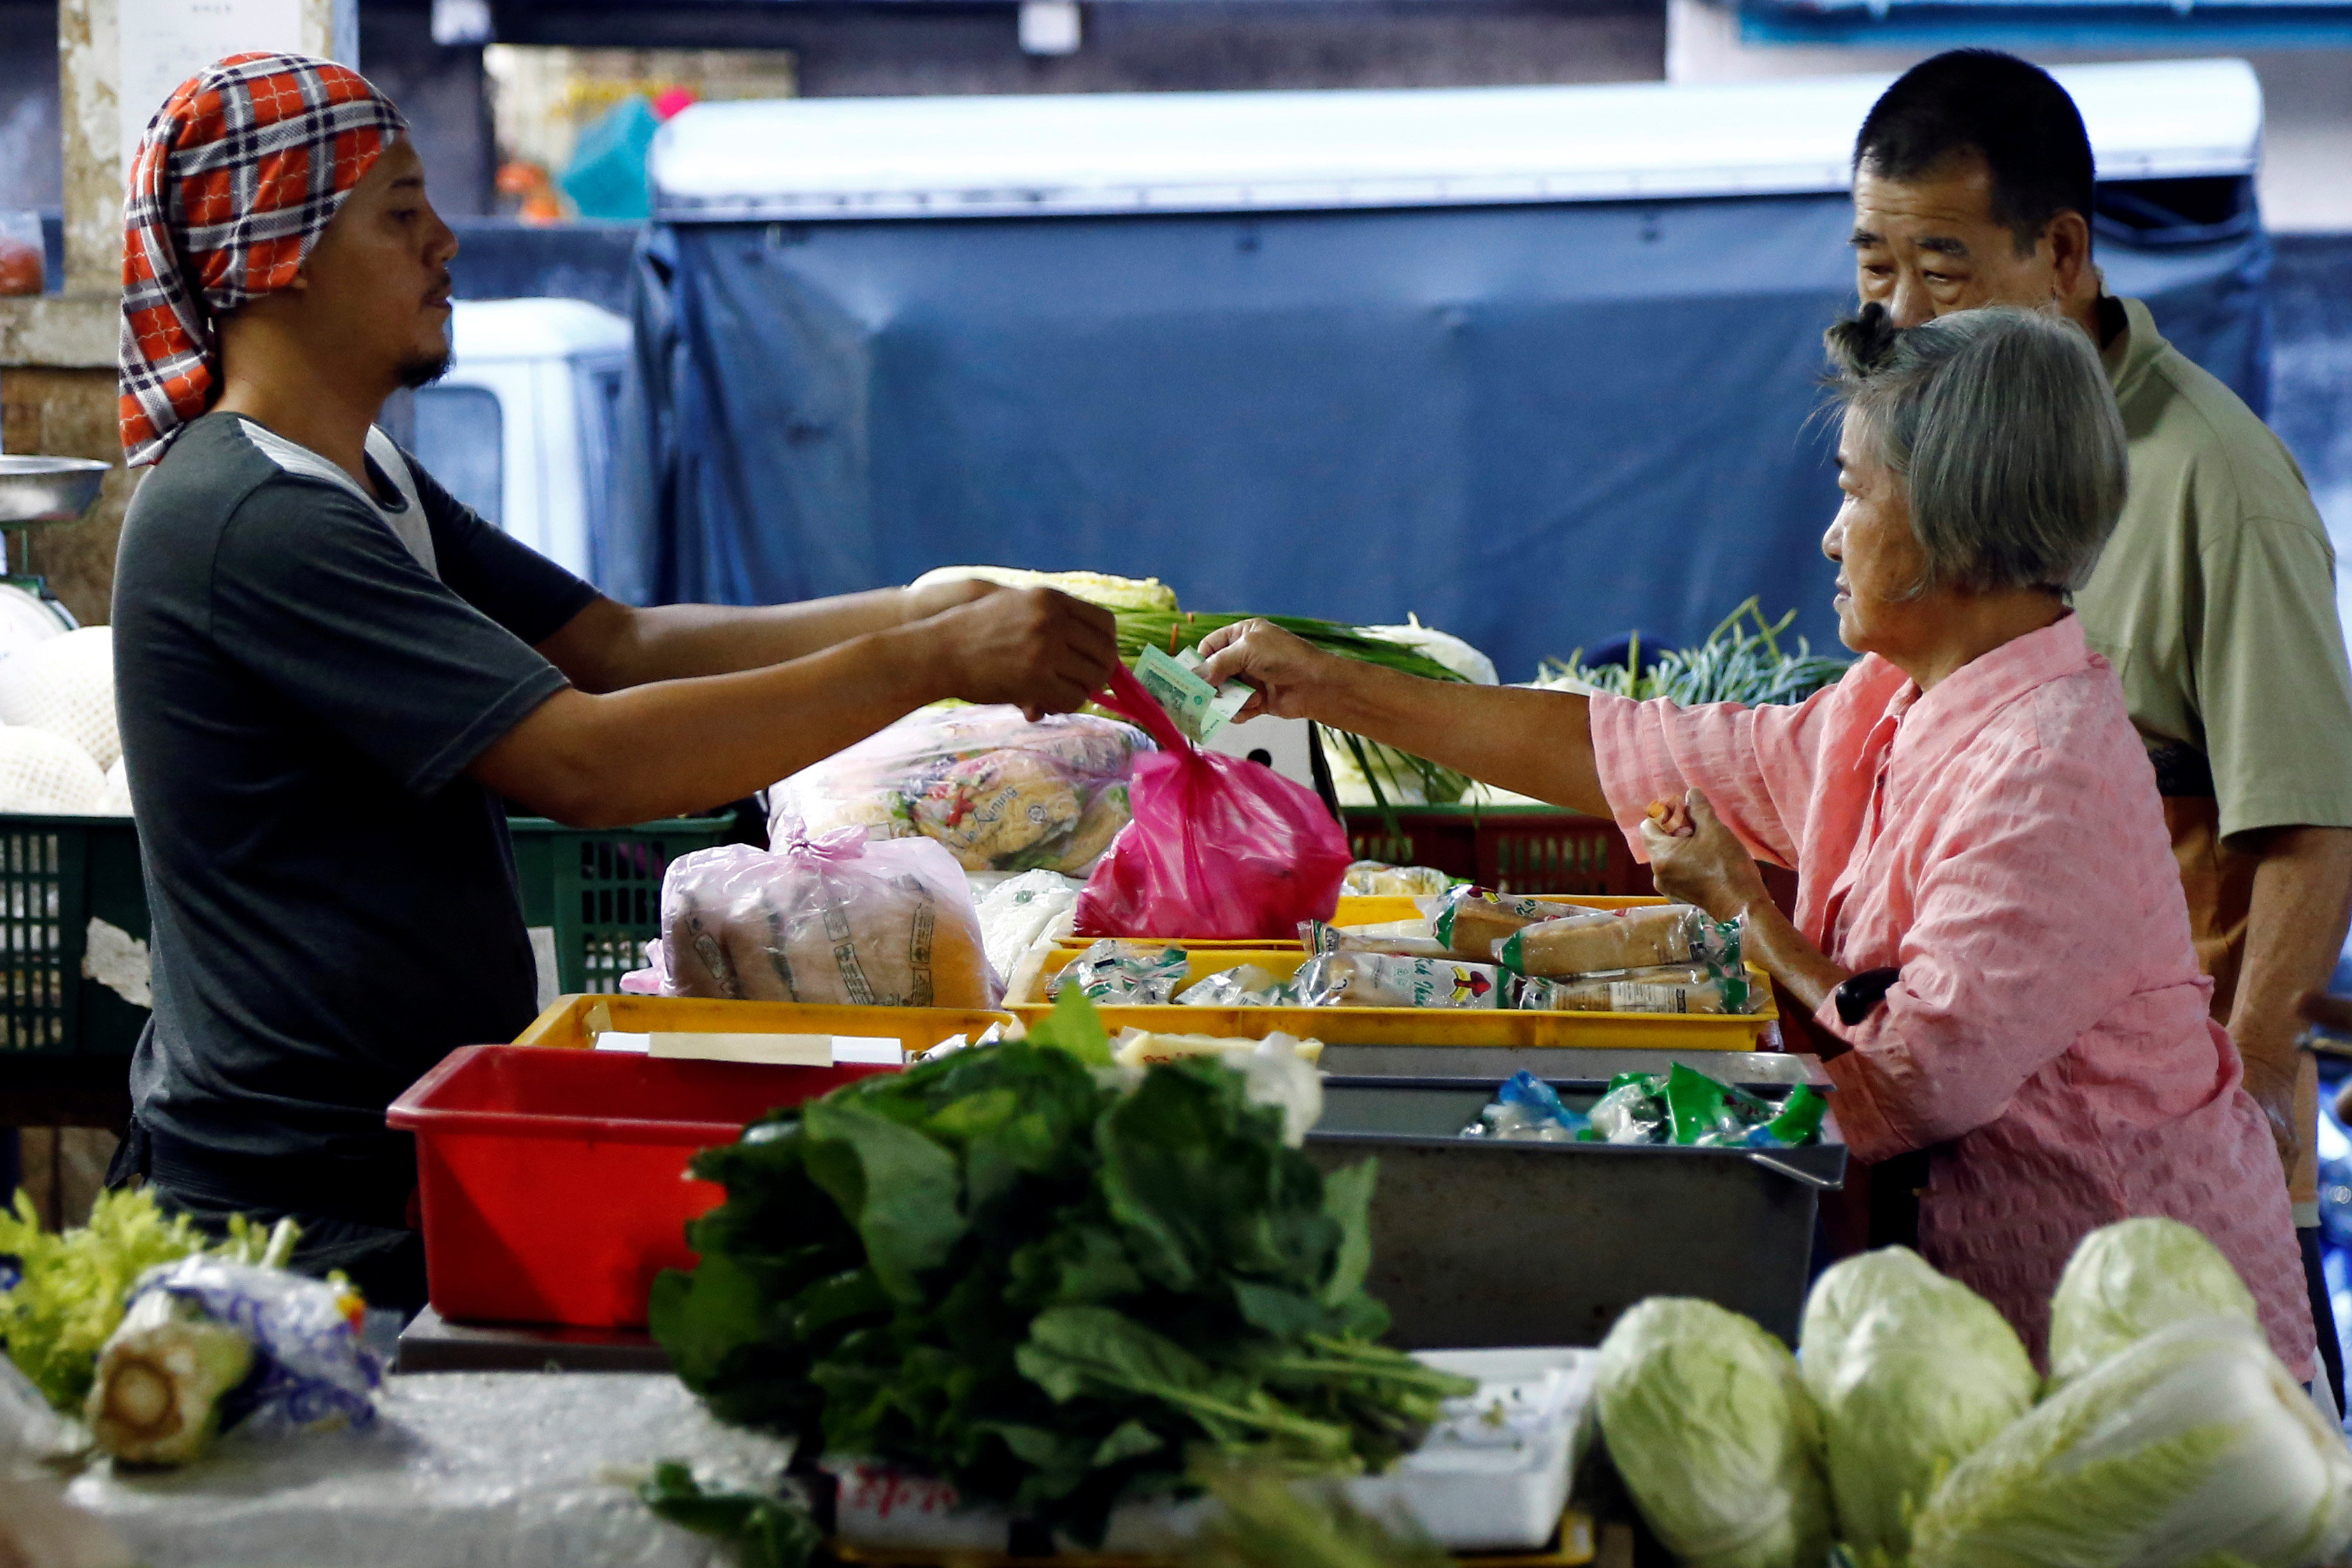 A customer pays for vegetables at a wet market in Klang October 27, 2017. — Reuters pic